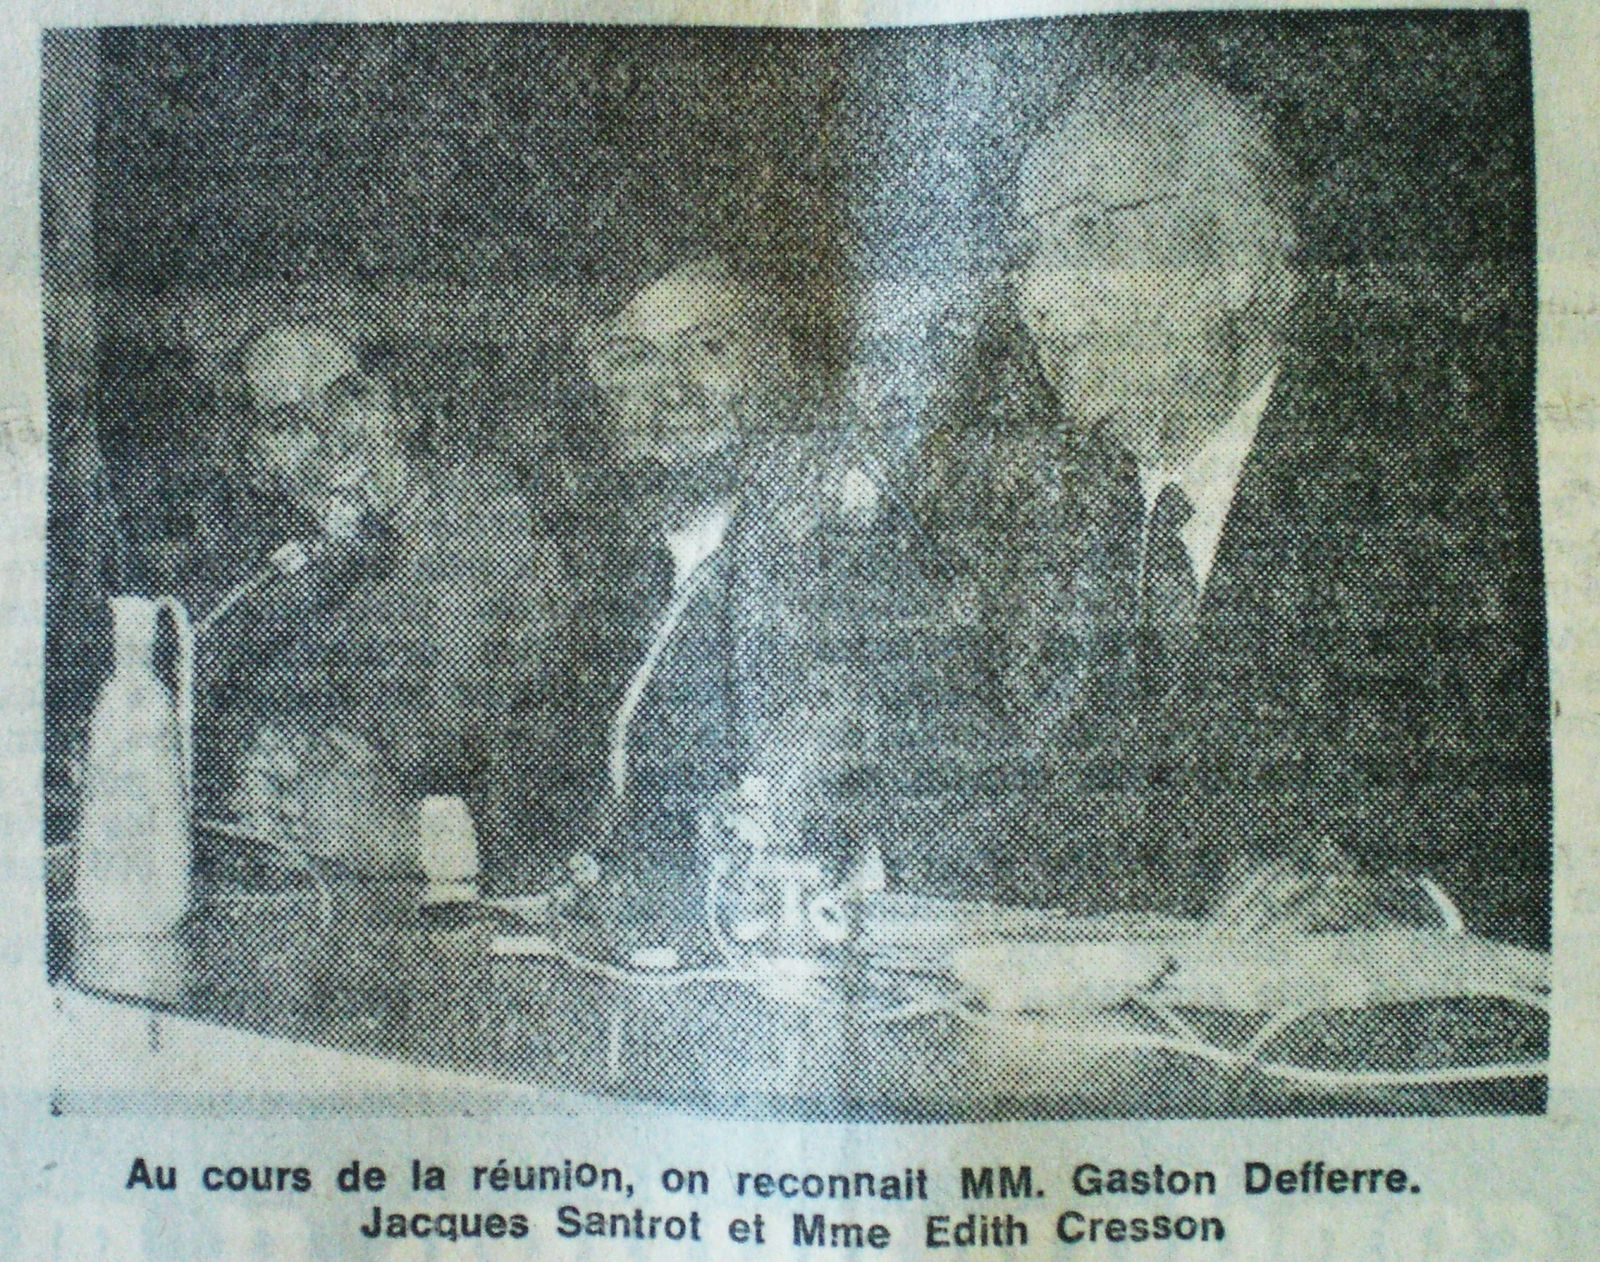 Cresson-Santrot-Deferre-1975.JPG